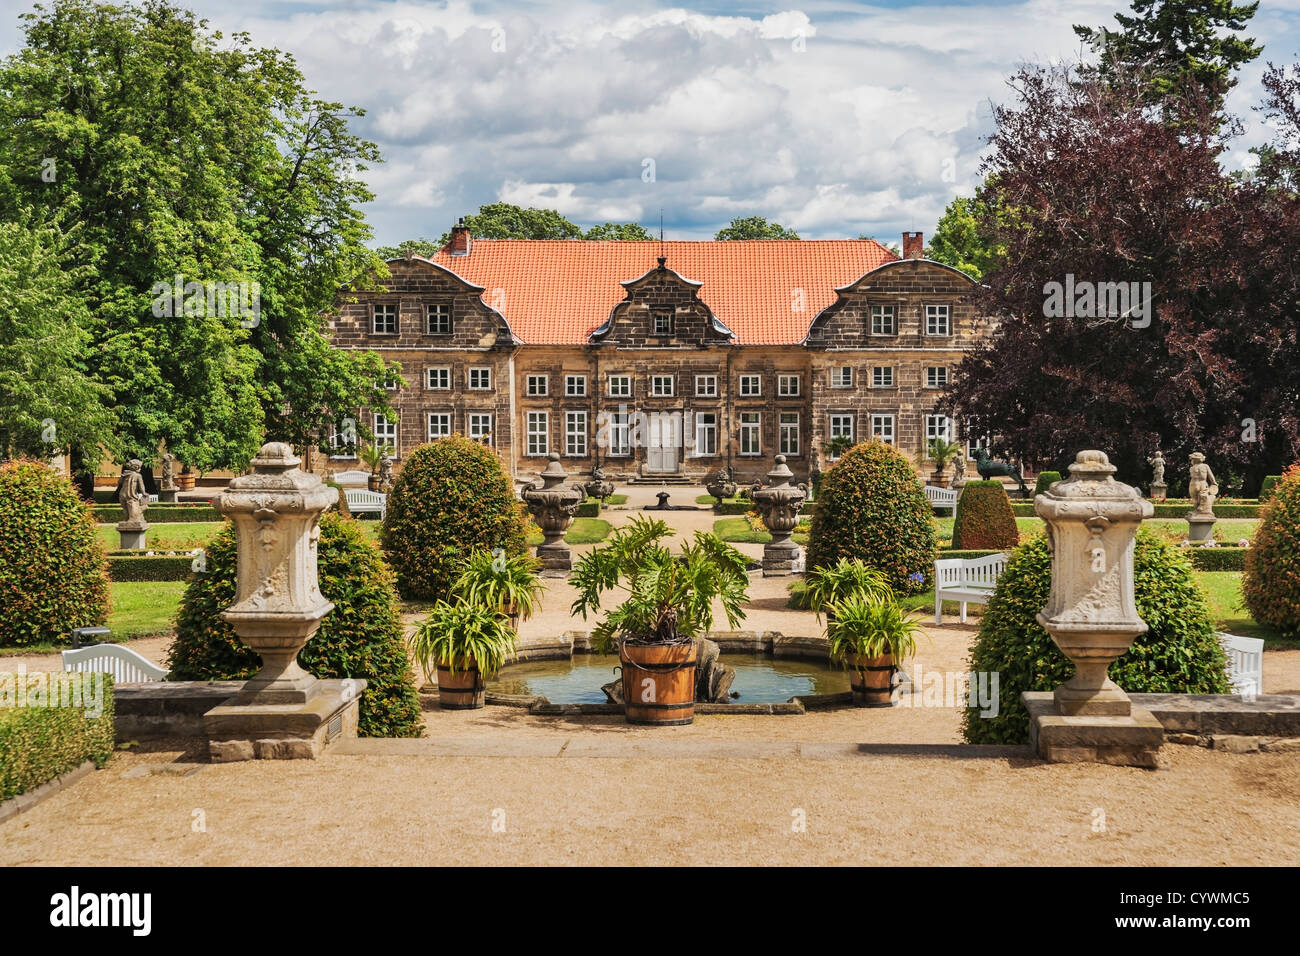 Small castle and park in the Baroque style, Blankenburg, Harz, Saxony-Anhalt, Germany, Europe - Stock Image